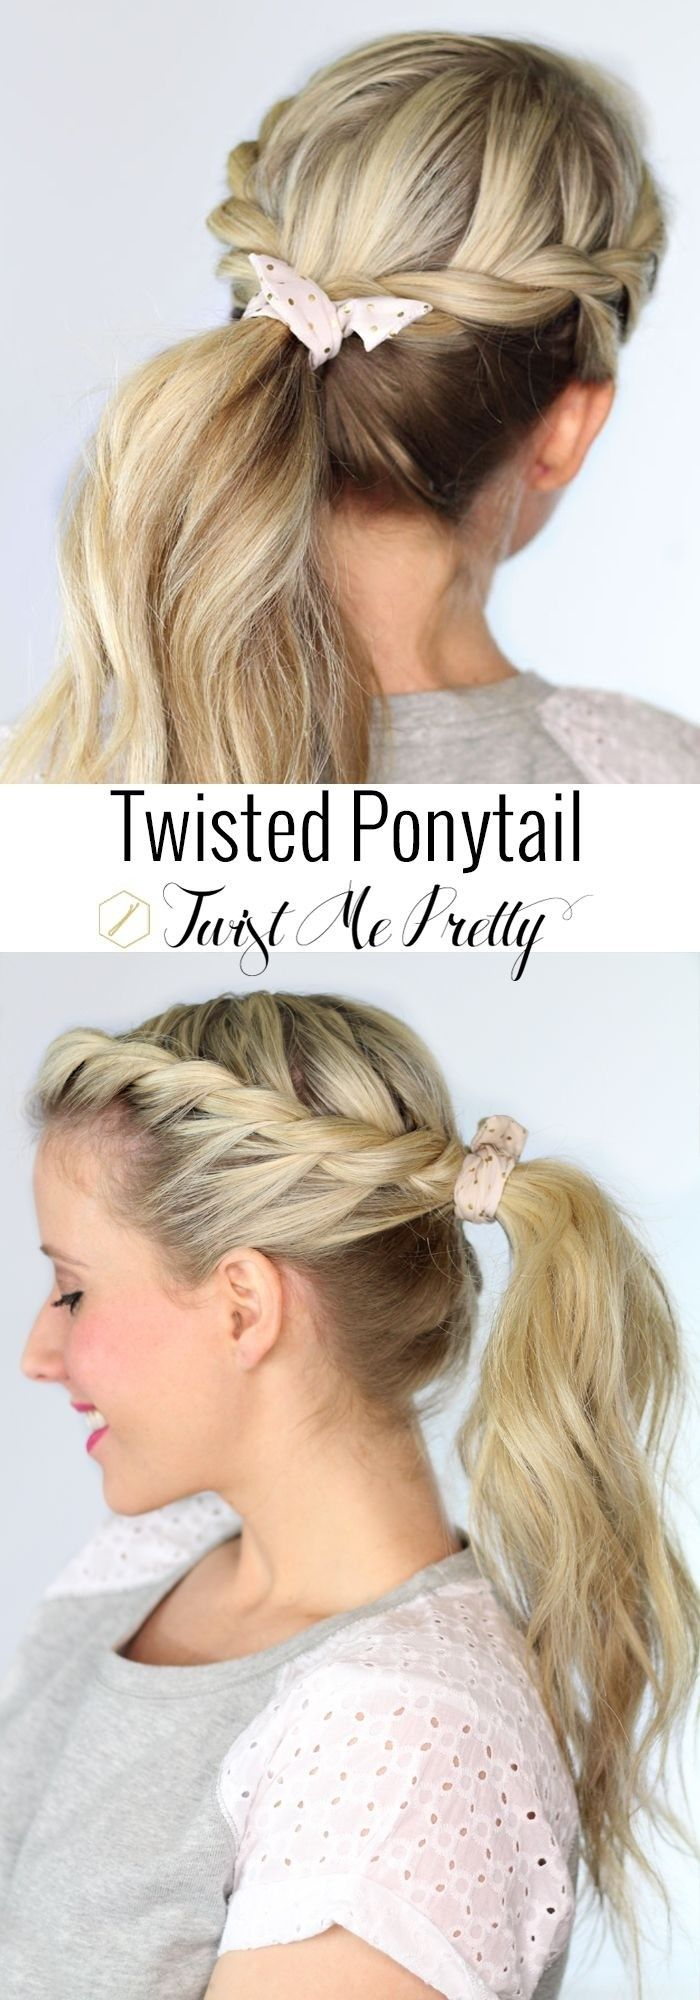 This Twisted Braids Ponytail Hairstyle Is So Fresh and Absolutely Perfect for the warmer weather!